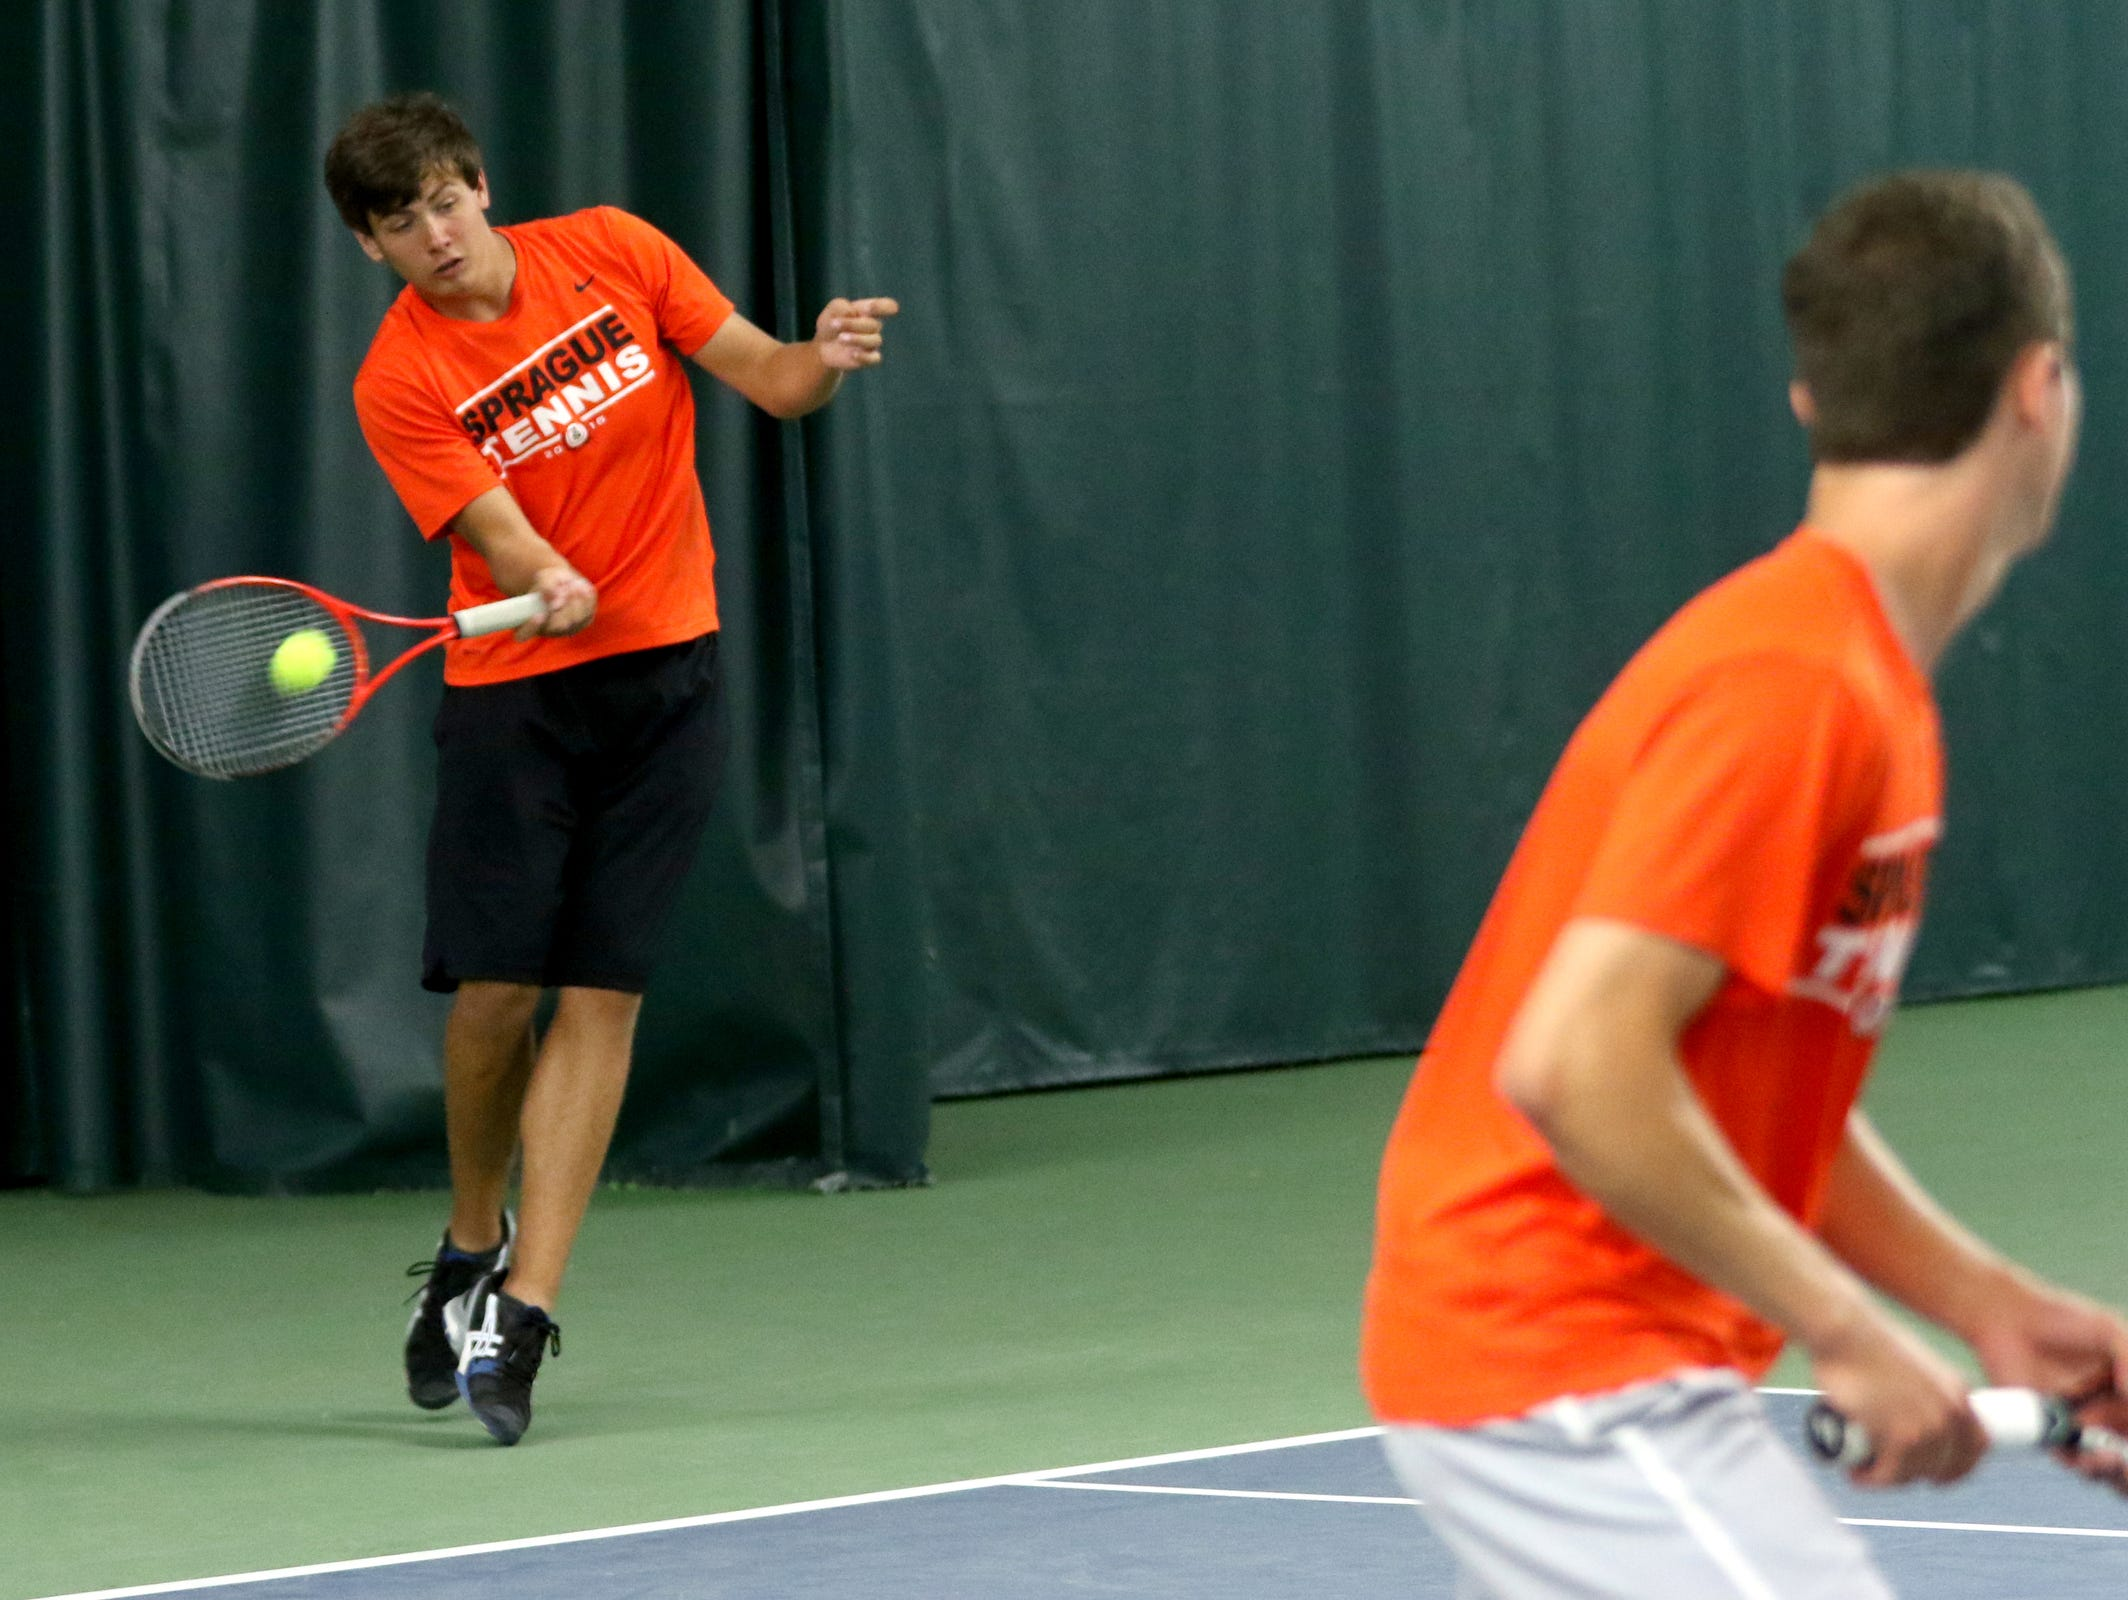 Sprague's Nate Harder, left, and Jonah Lovell compete in the boy's doubles championships at the Greater Valley Conference district meet at the Salem Tennis and Swim Club on Saturday, May 14, 2016. They placed second.